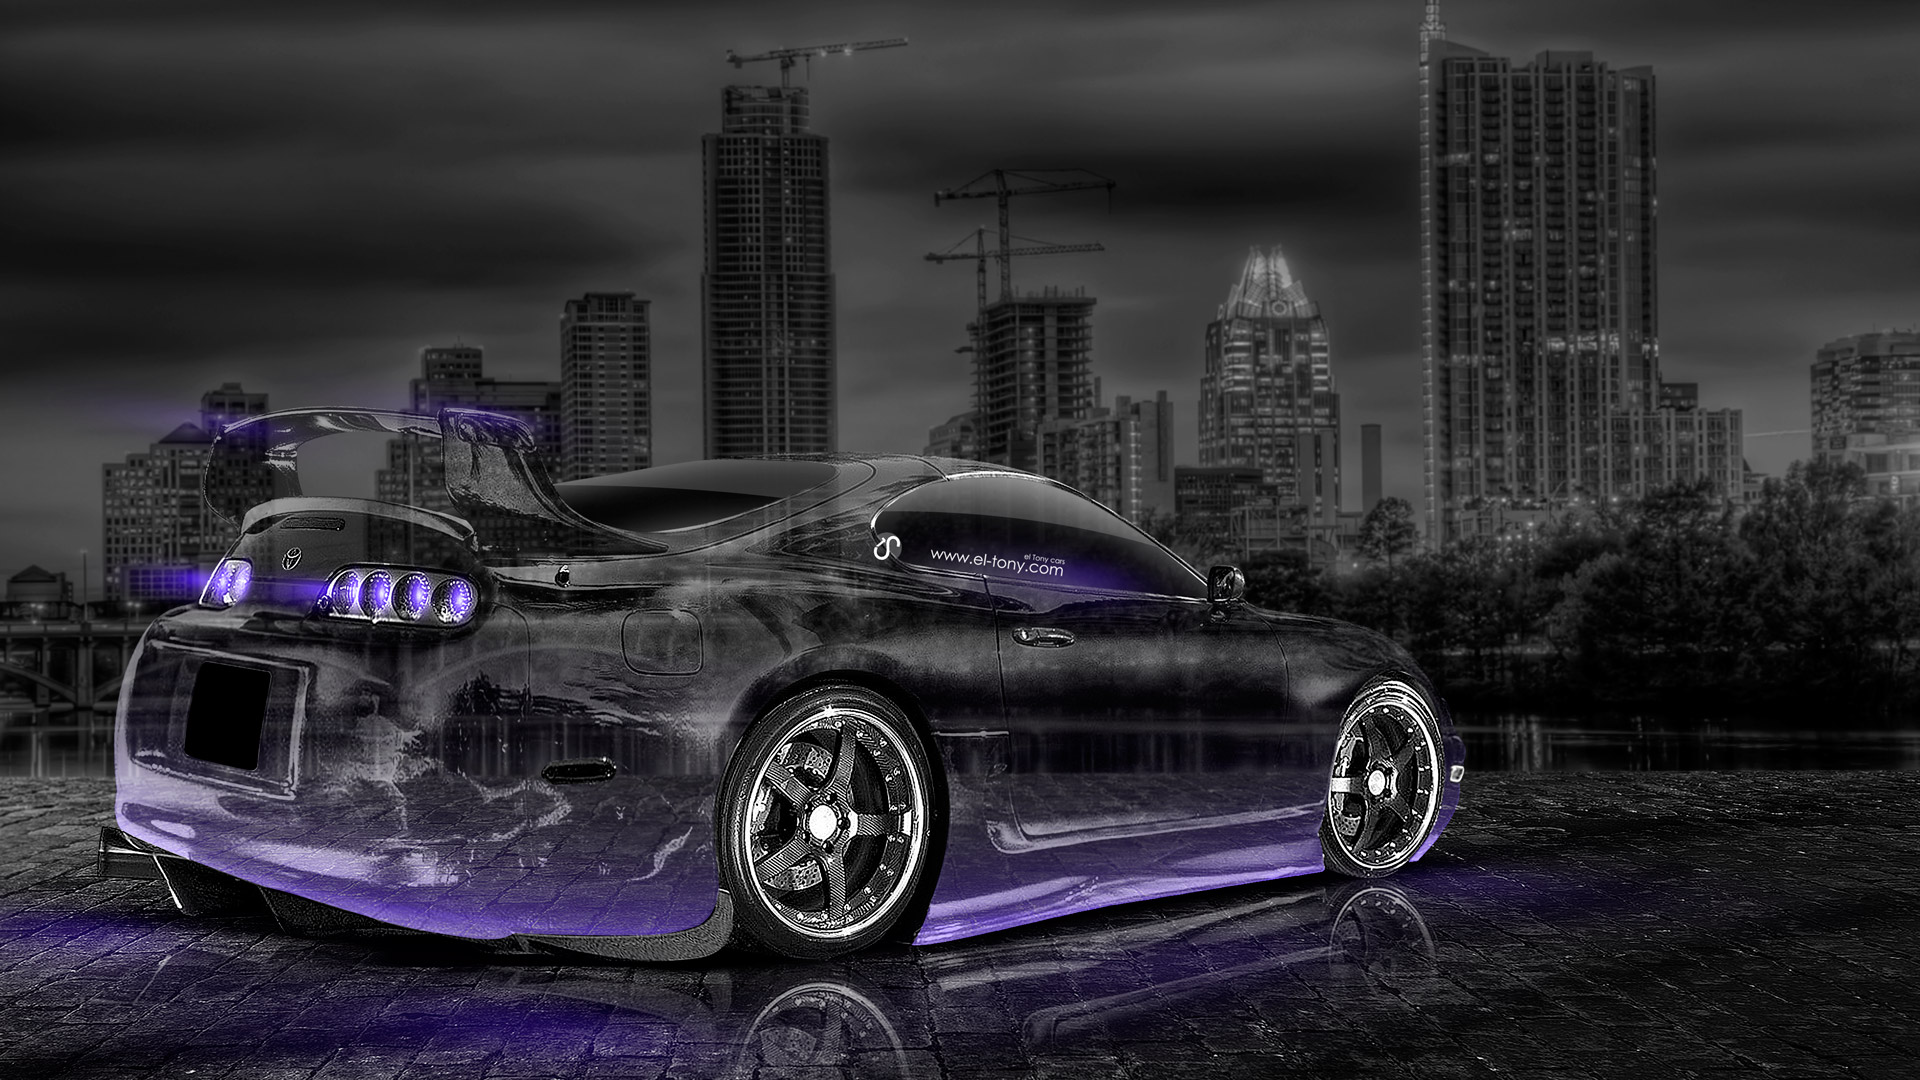 Bon Toyota Supra JDM Crystal City Car 2014 Violet .